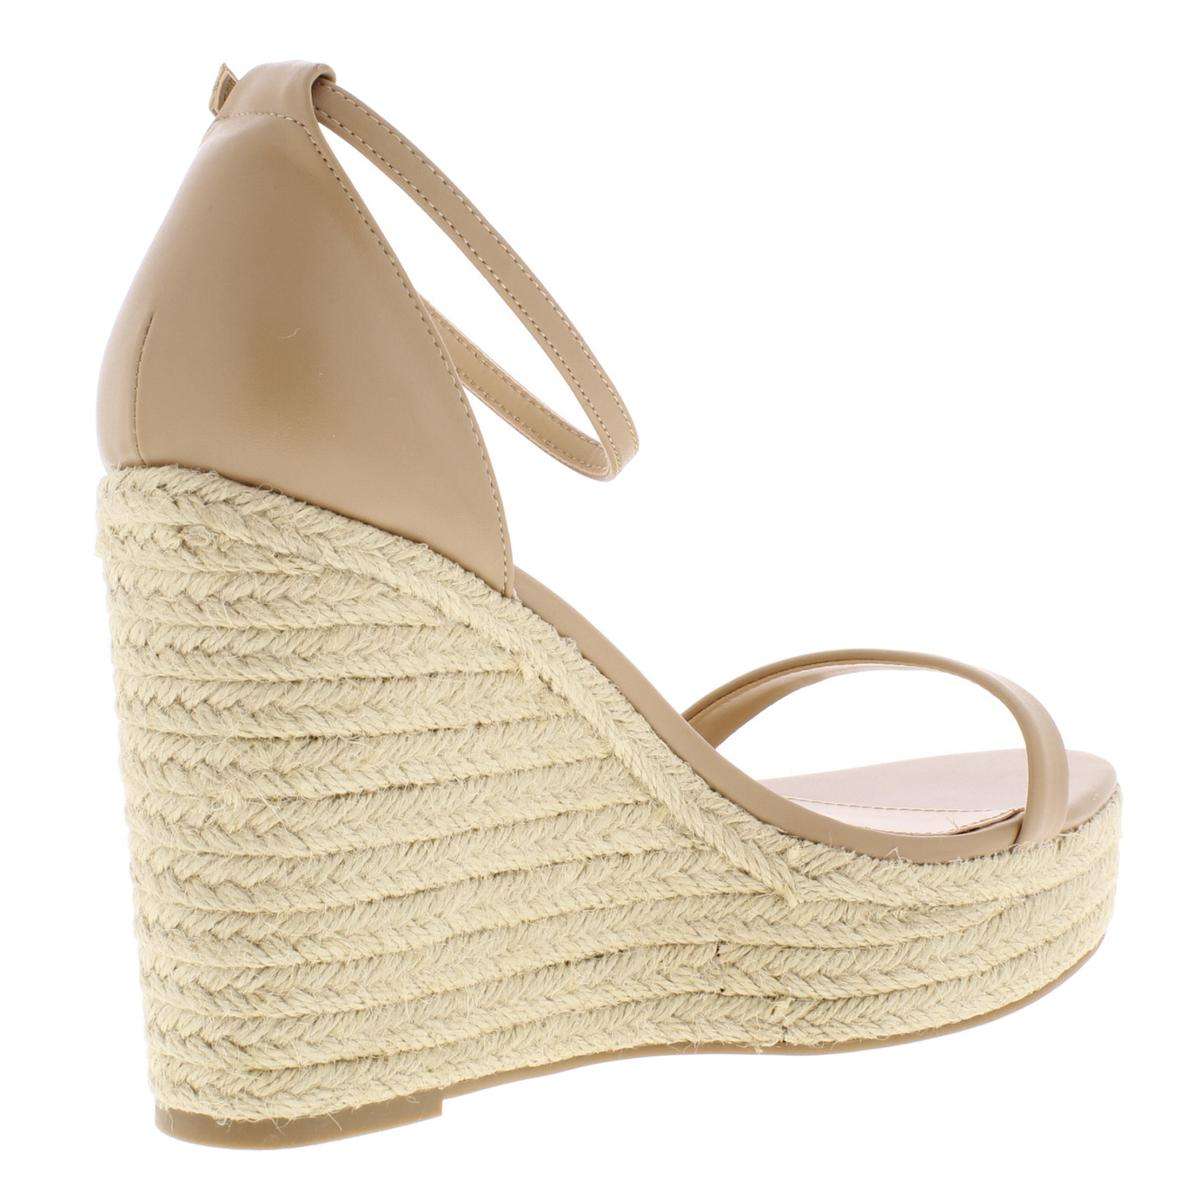 Steve-Madden-Womens-Survive-Padded-Insole-Espadrille-Wedges-Shoes-BHFO-5902 thumbnail 4